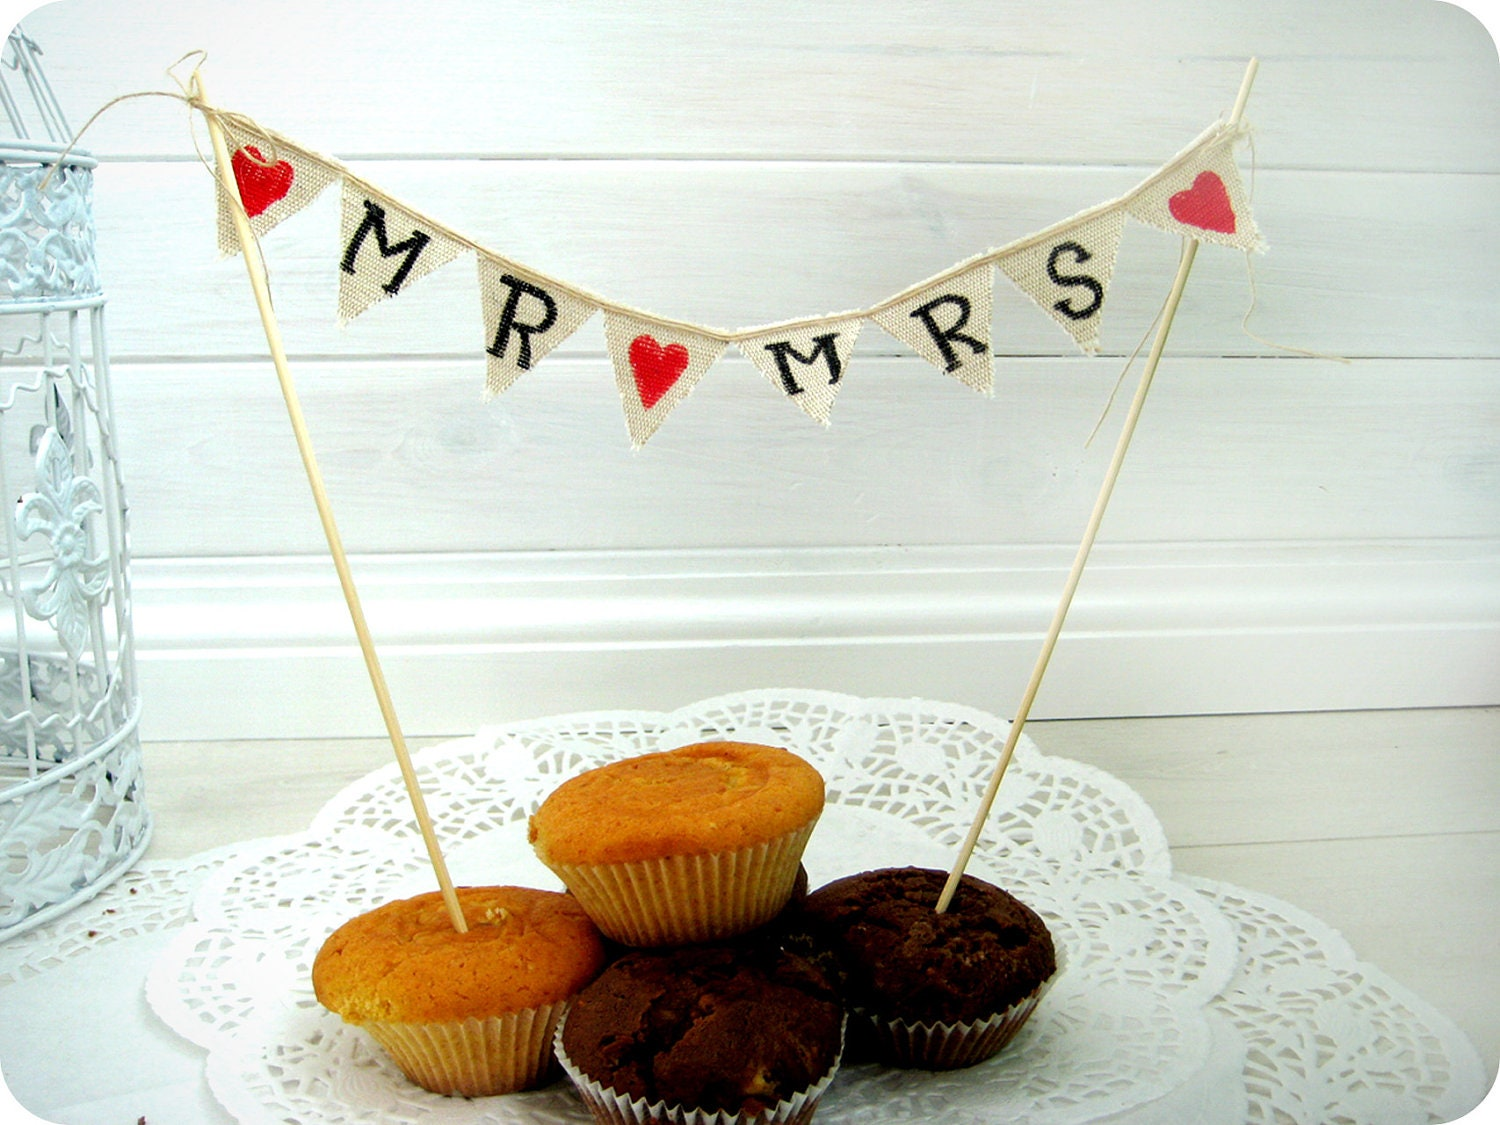 Rustic Mr & Mrs Wedding cake banner pennant bunting style